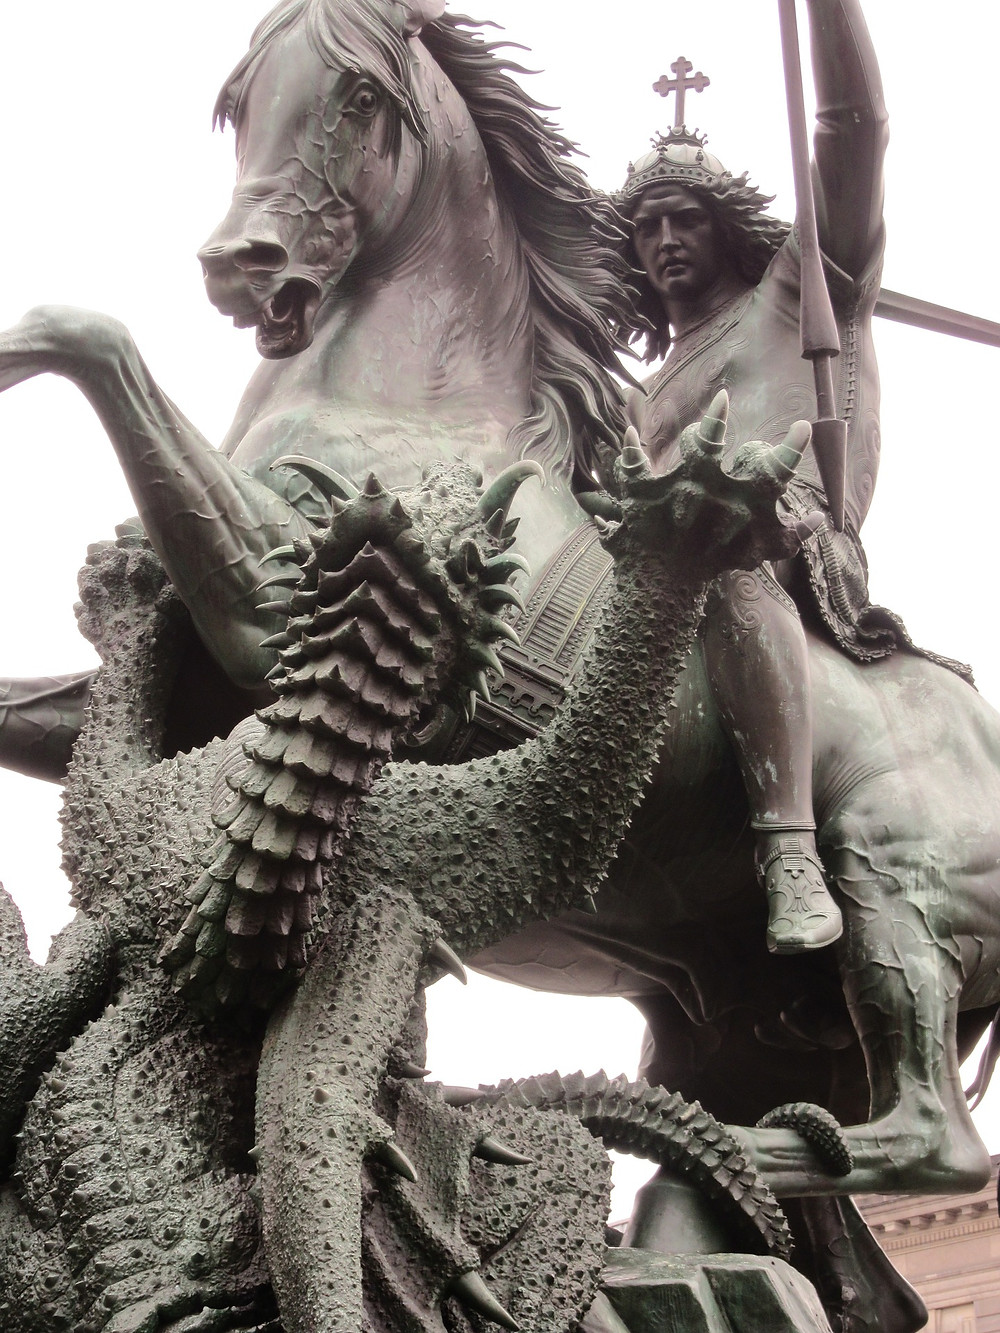 A statue of St. George in Berlin, Germany